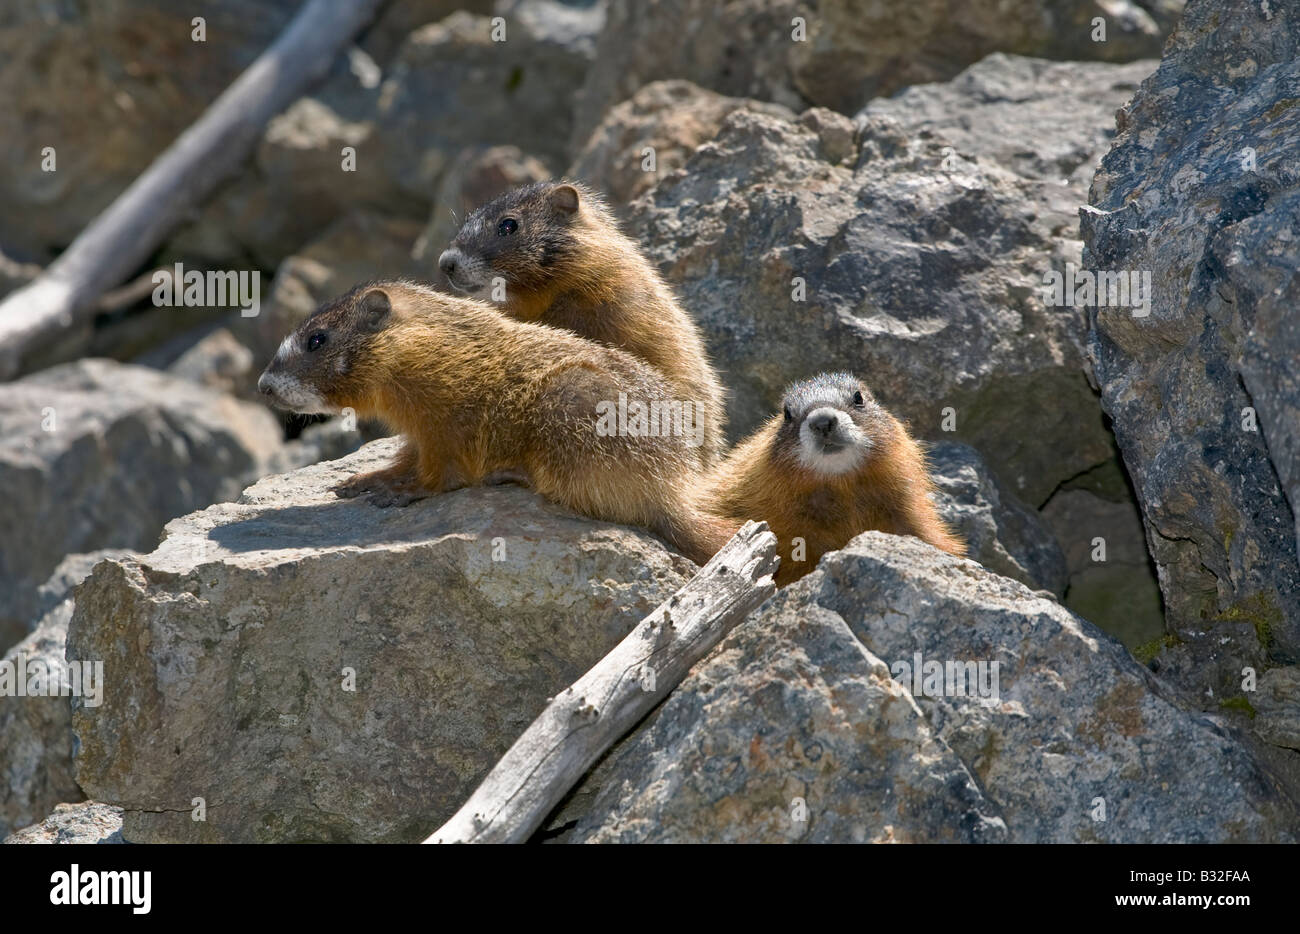 YELLOW BELLIED MARMOT Marmota flaviventris YOUNG amongst the rocks YELLOWSTONE NATIONAL PARK WYOMING - Stock Image